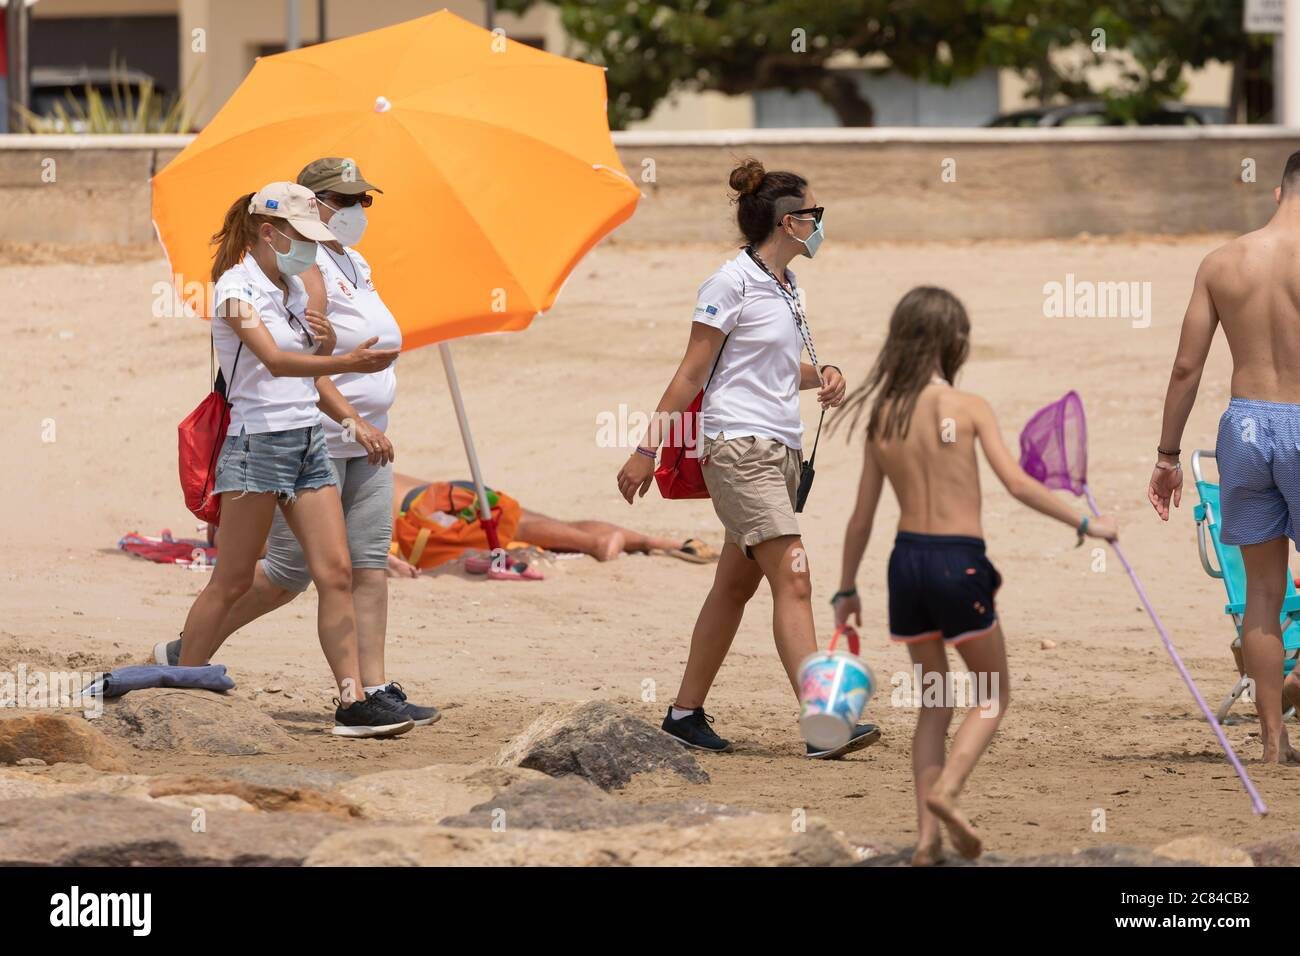 Torrenostra, Castellon, Spain - July 16, 2020: Beach assistants and attendants, work on the beach informing to help beachgoers to prevent the spread o Stock Photo